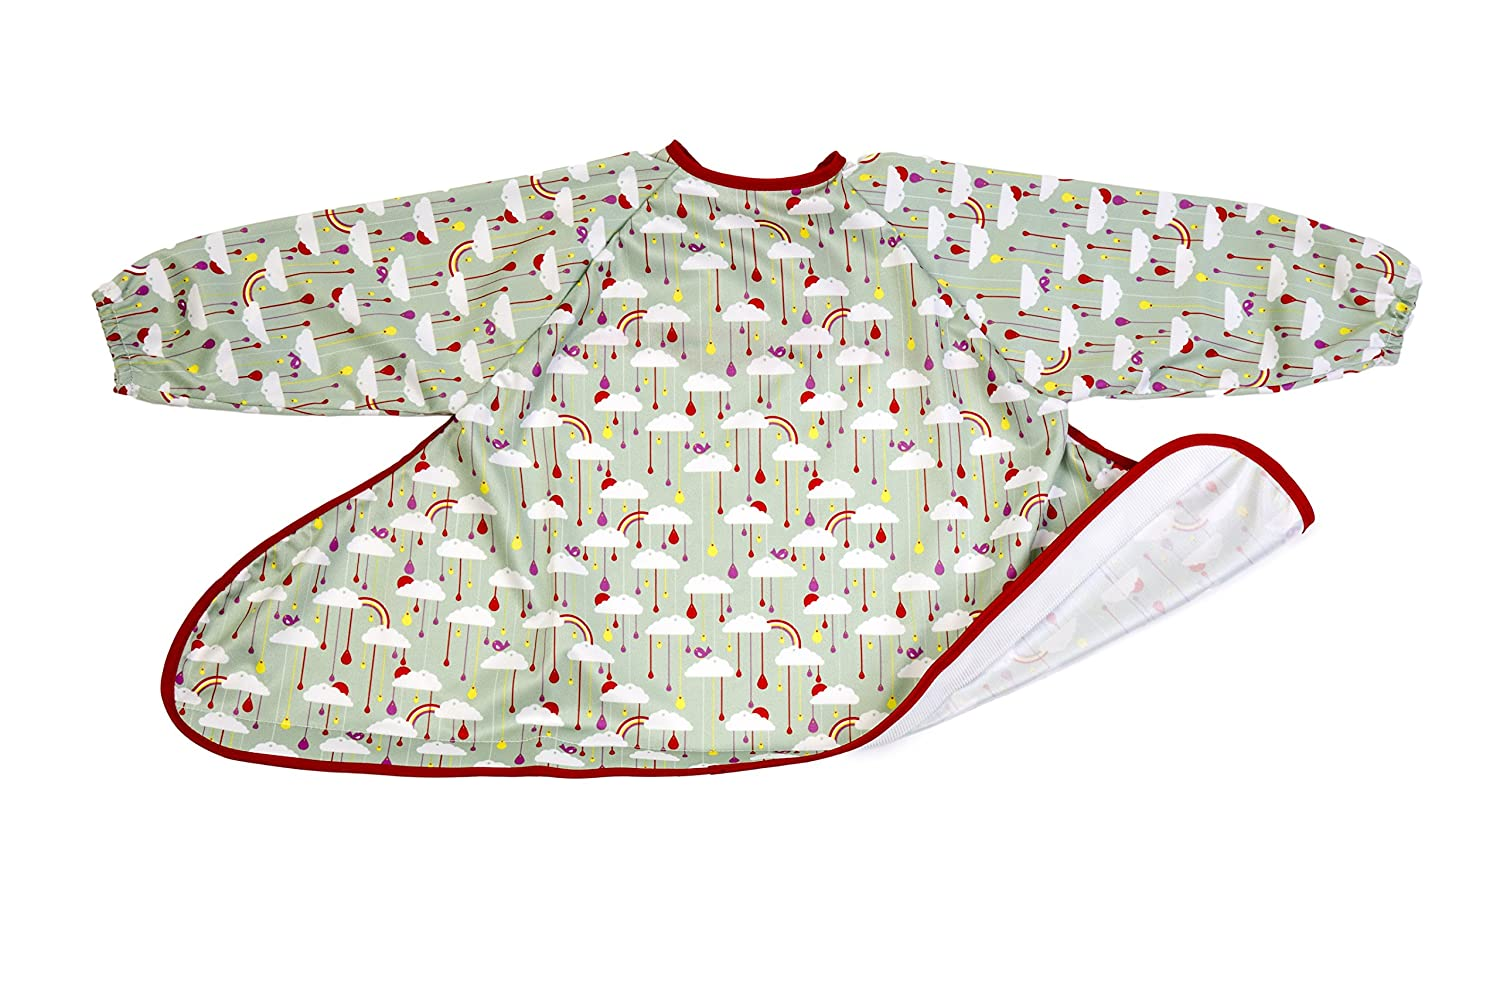 Tidy Tot Bib Apples and Pears. Unisex. One Size fits 6 months - 2 years. Waterproof. Adjustable Fit. Long Sleeved. Complete coverall. Award Winning Design. No spills! TIDYTOTDGBIBV2